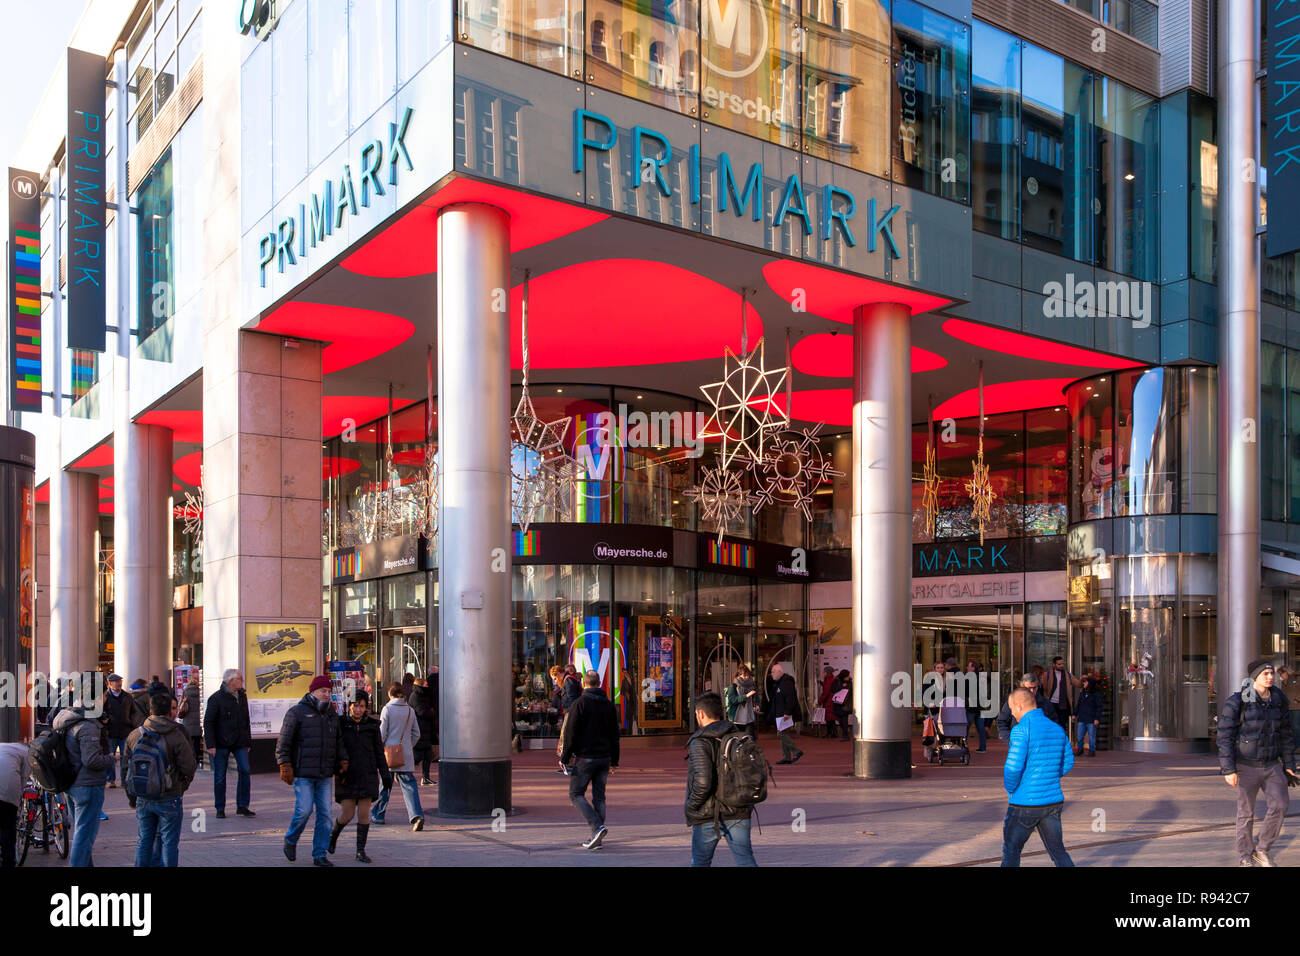 Primark Osnabrück Neumarkt Cologne Germany Shopping Stock Photos Neumarkt Cologne